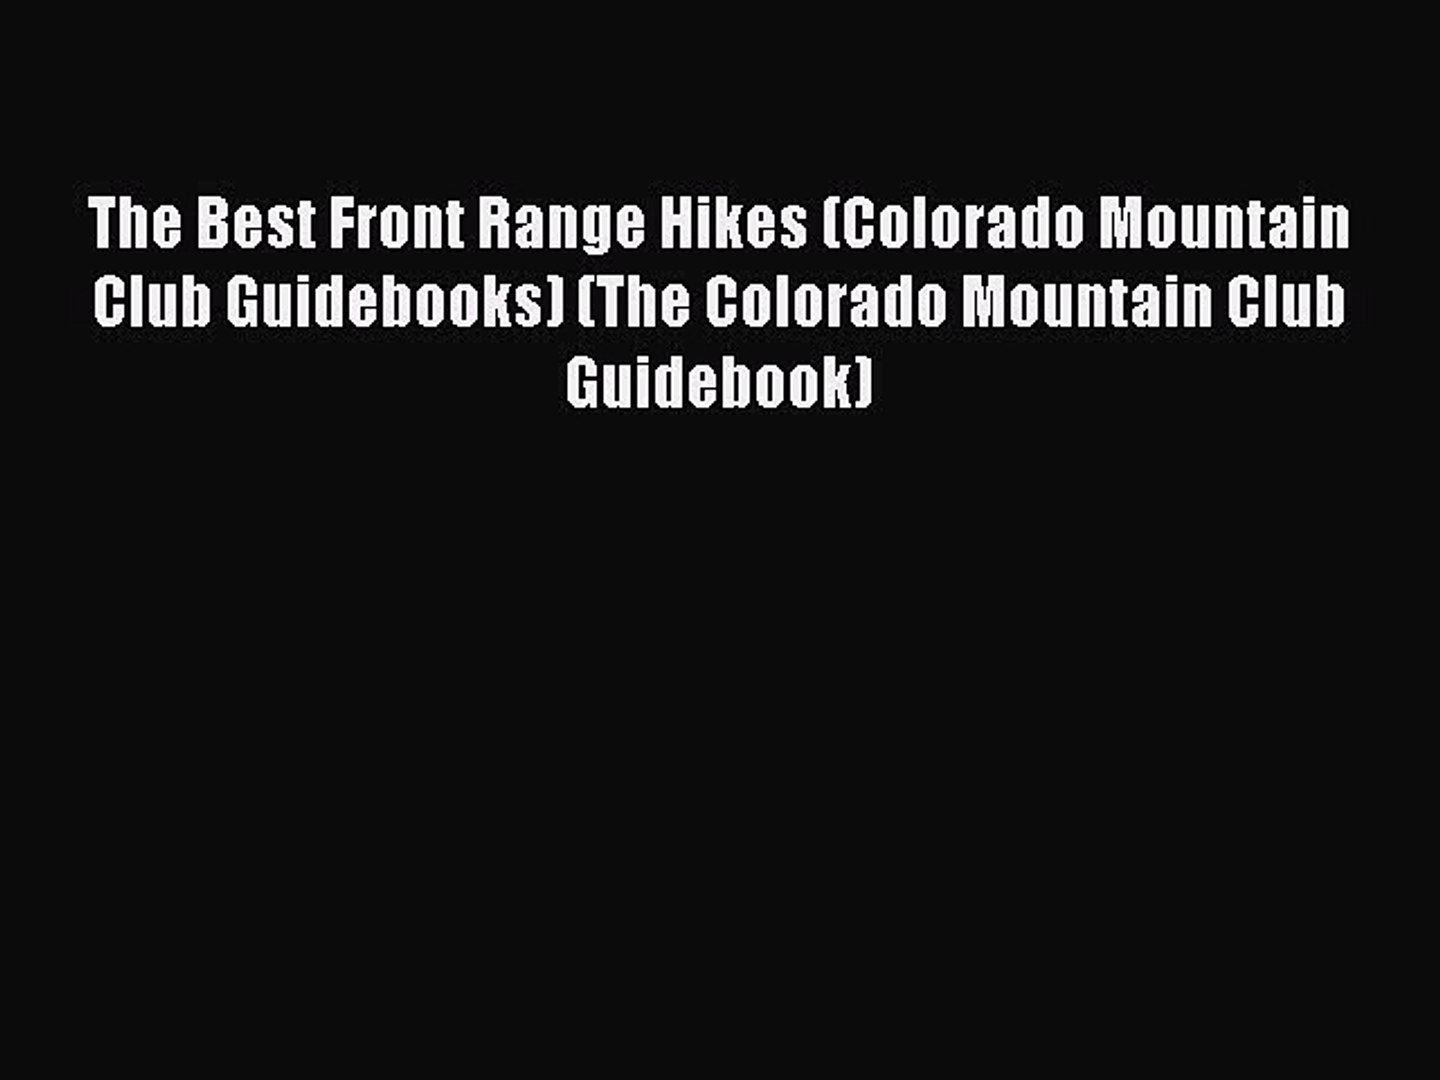 Read The Best Front Range Hikes (Colorado Mountain Club Guidebooks) (The Colorado Mountain